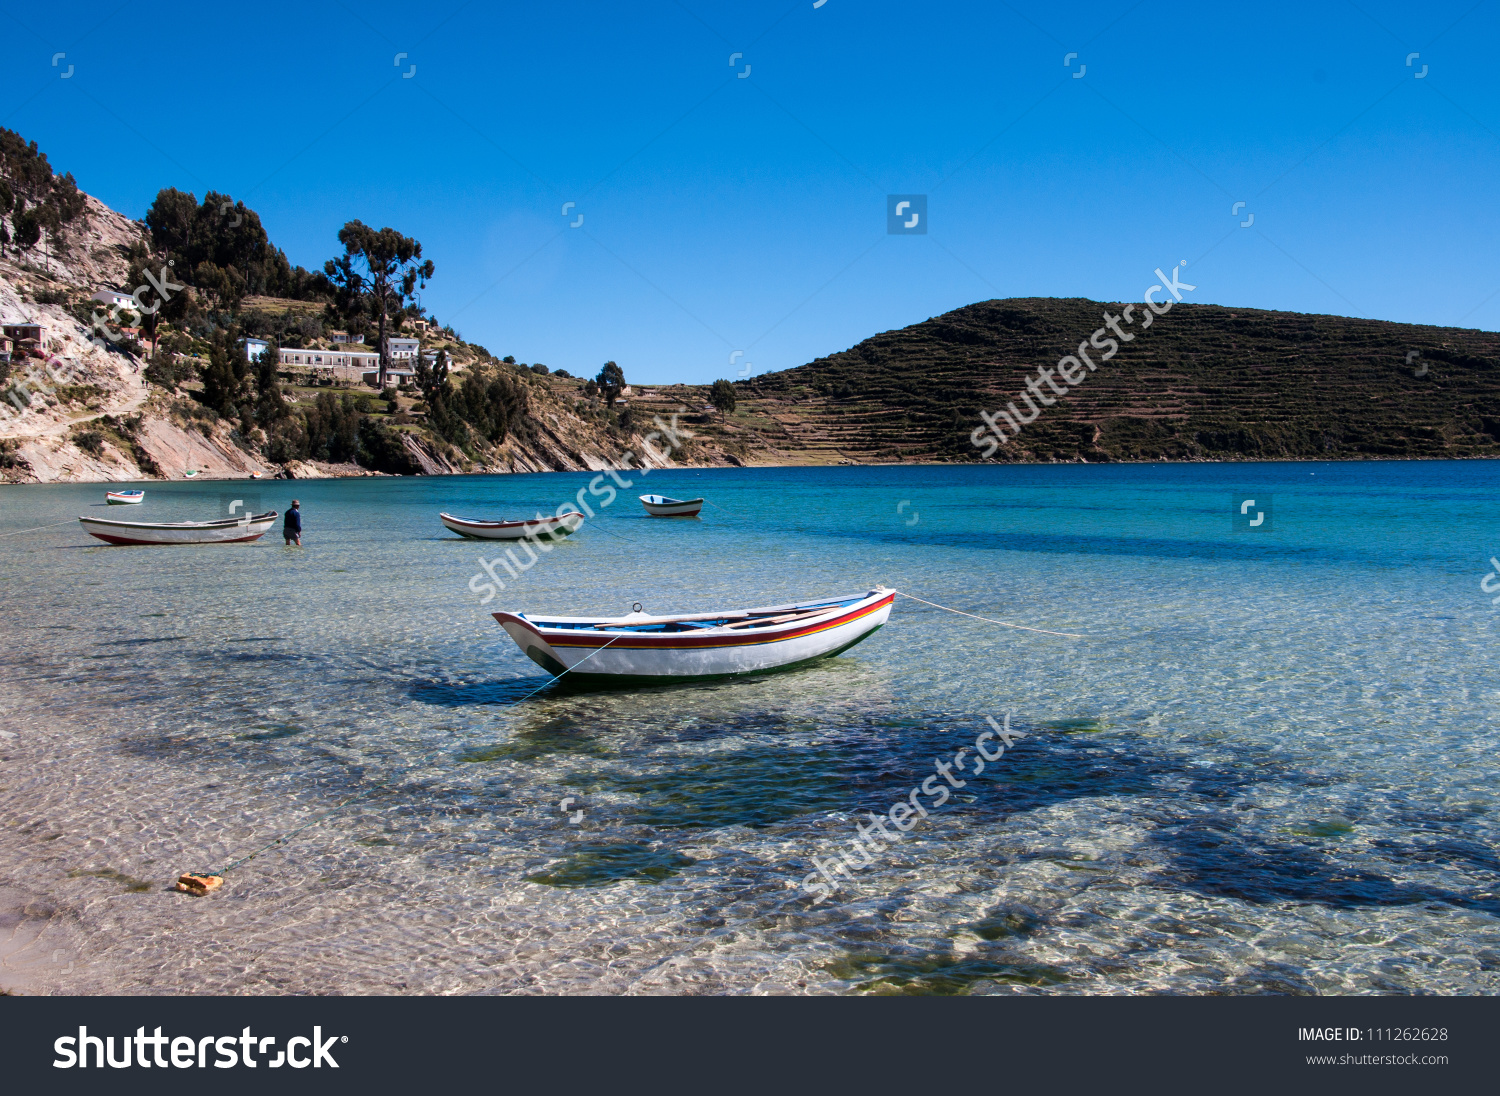 Beach On Isla Del Sol Copacabana Stock Photo 111262628.